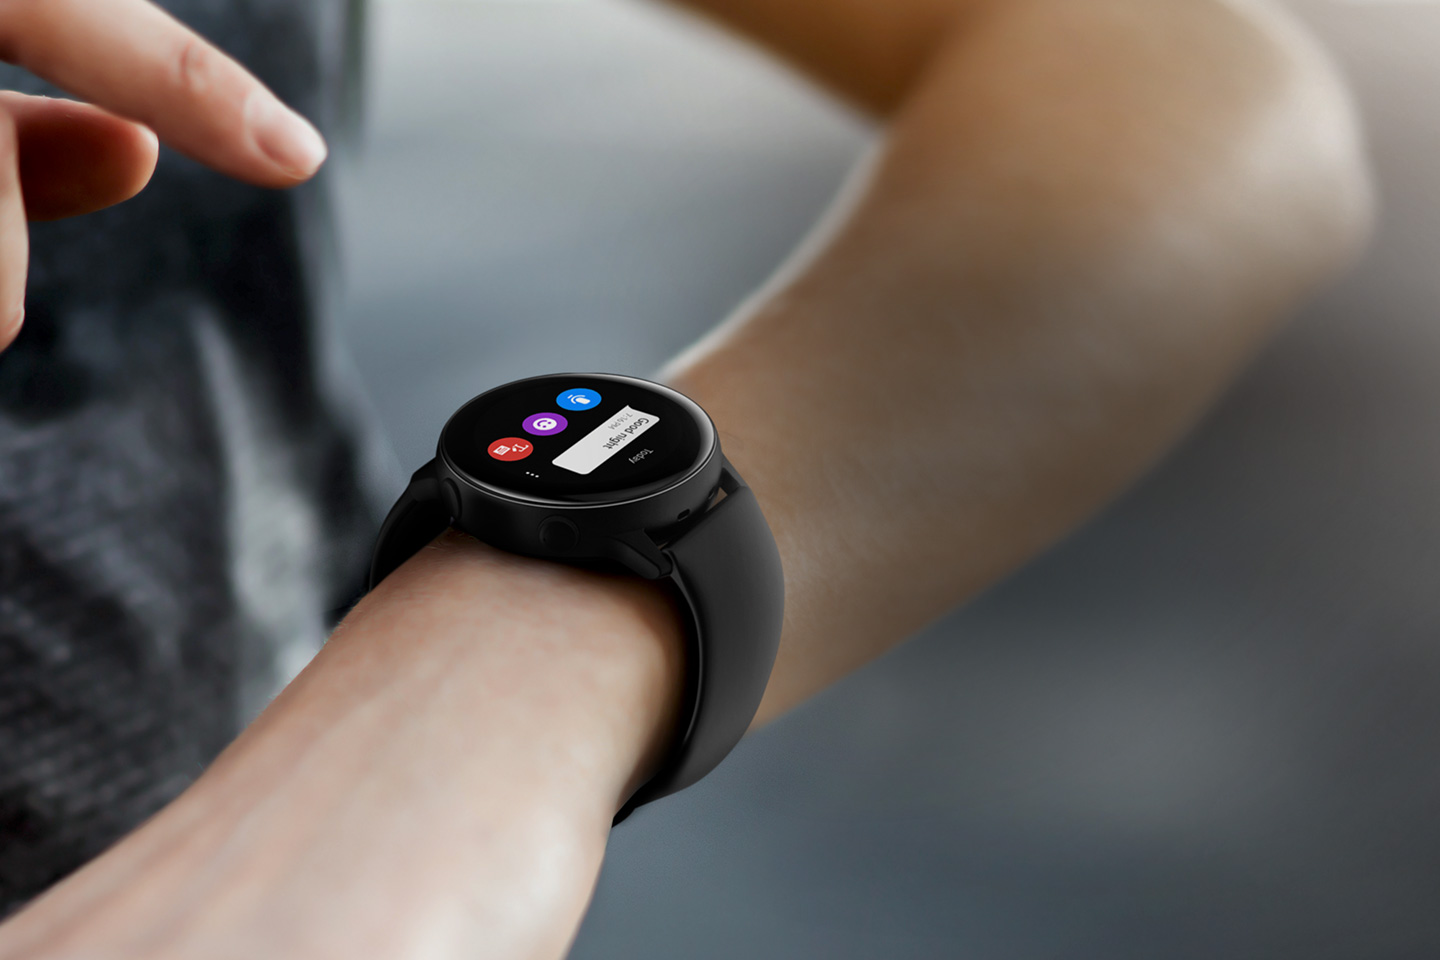 galaxy-watch-active-touch-wrist-message-